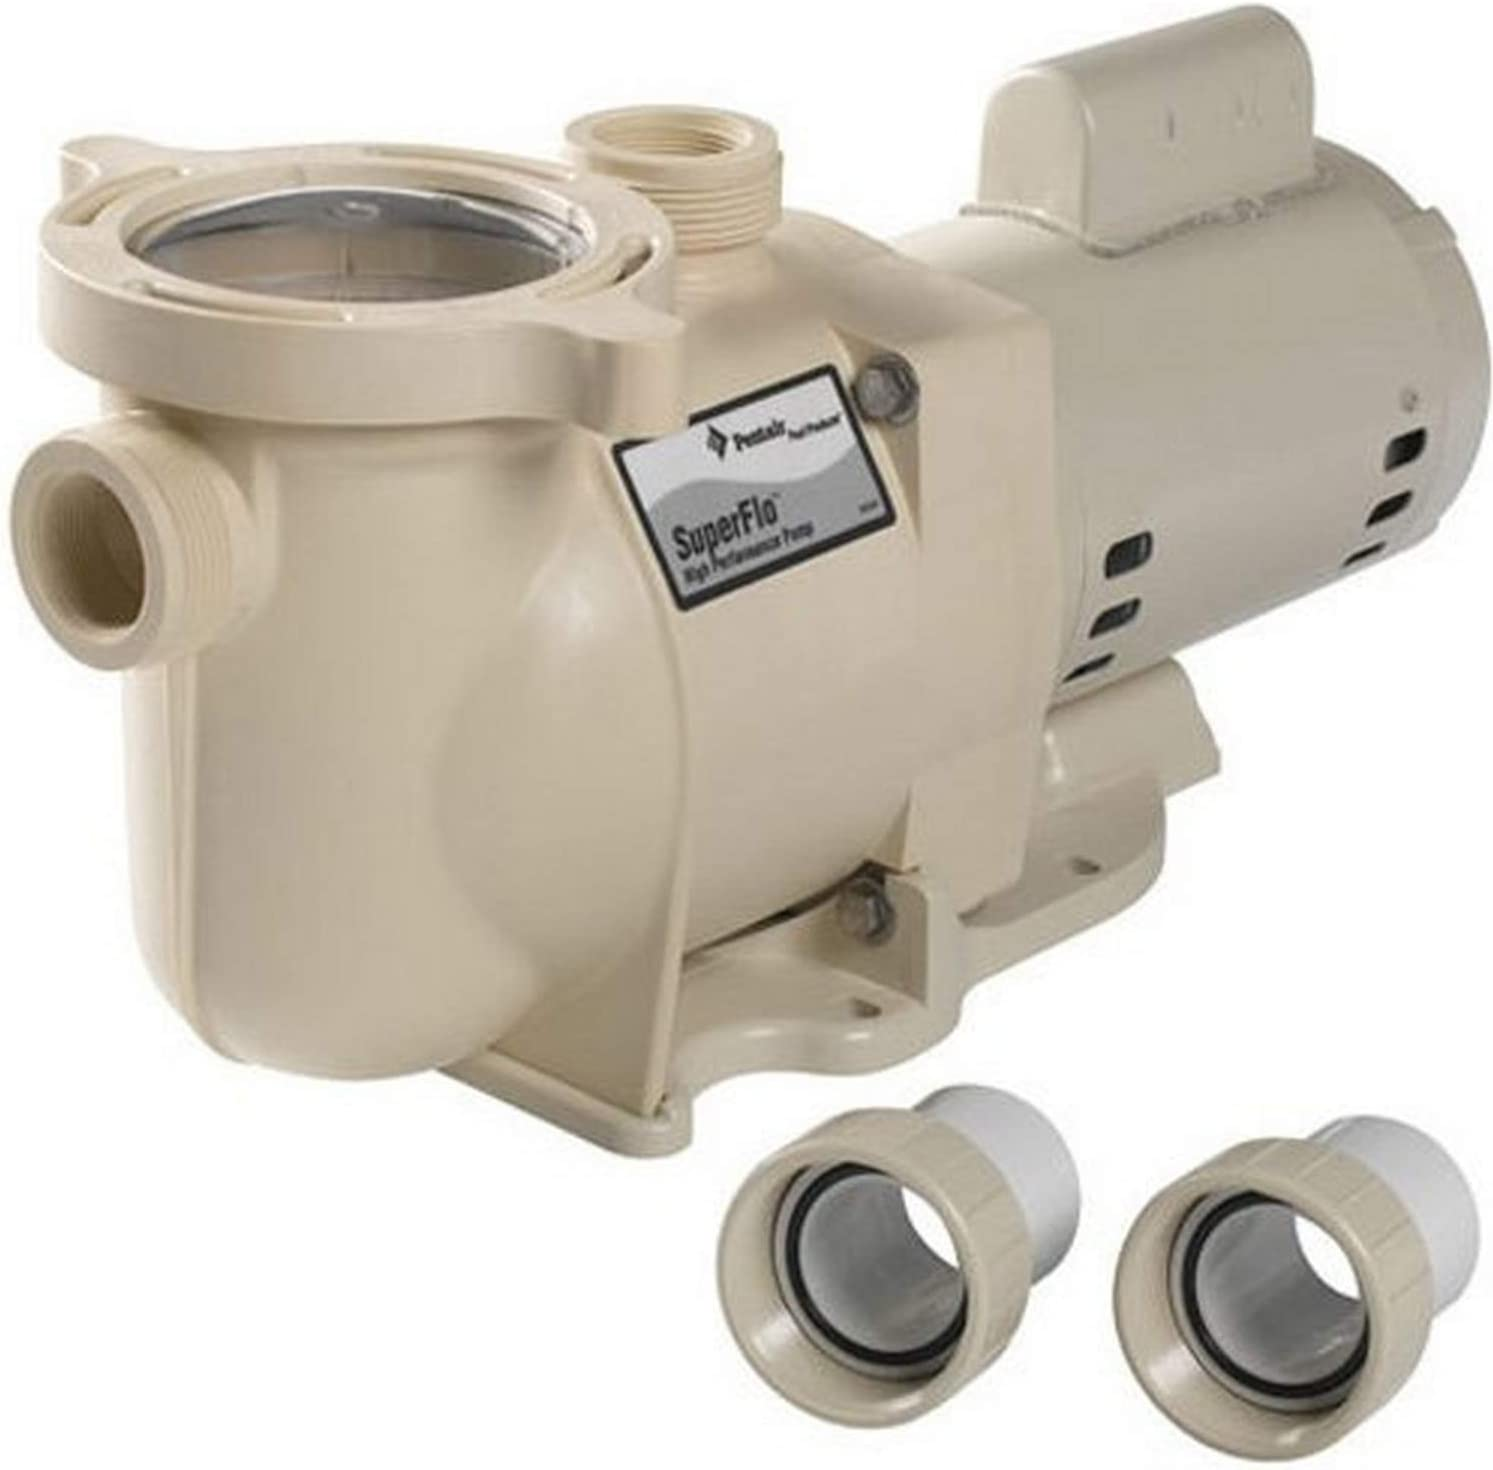 Pentair SF-N1-1AE SuperFlo Single Speed Energy Efficient Pump, 1 HP